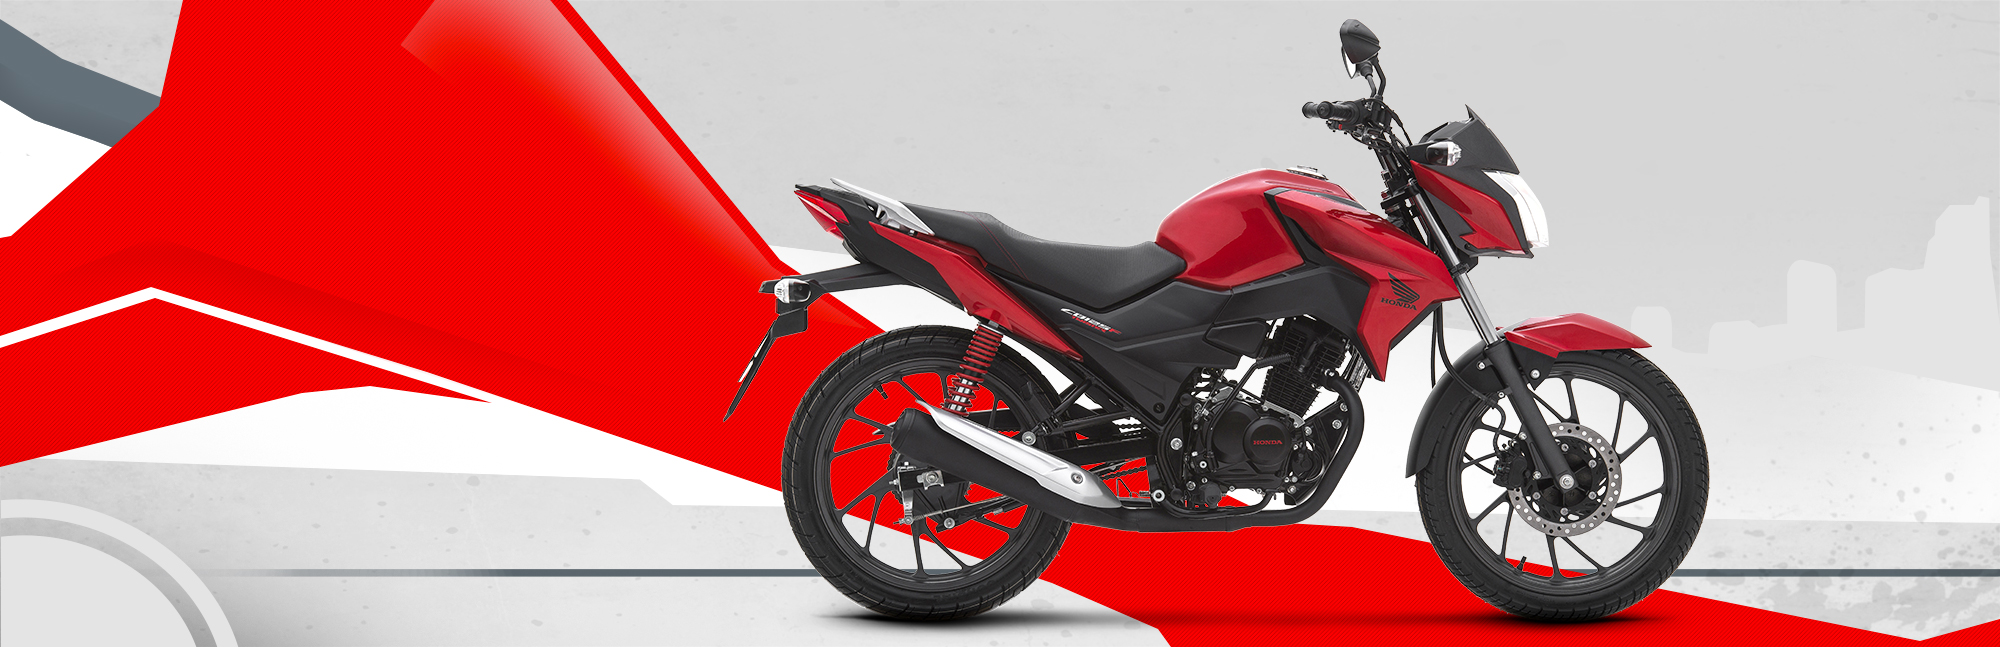 Motos Honda Costa Rica Cb125f Twister